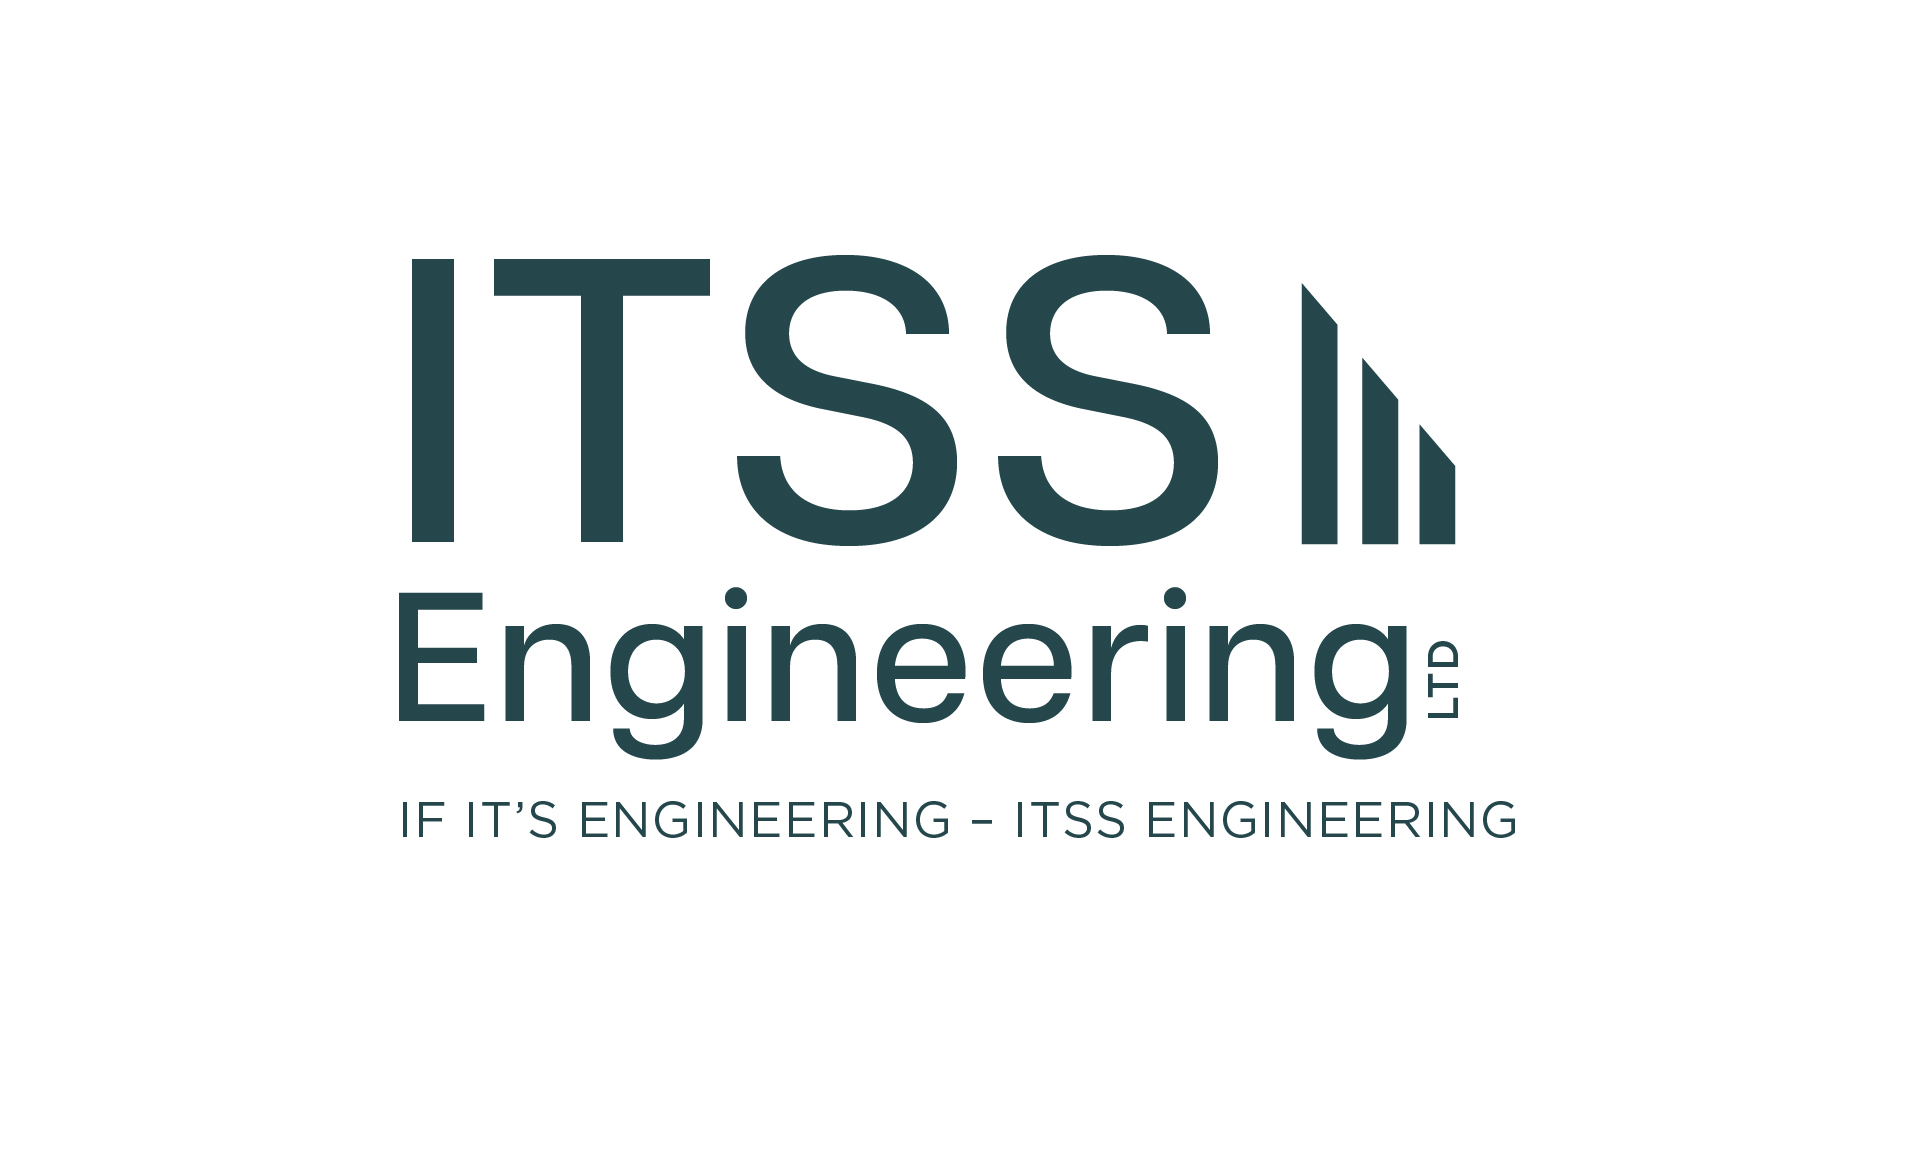 ITSS Engineering (formerly MS Engineering)